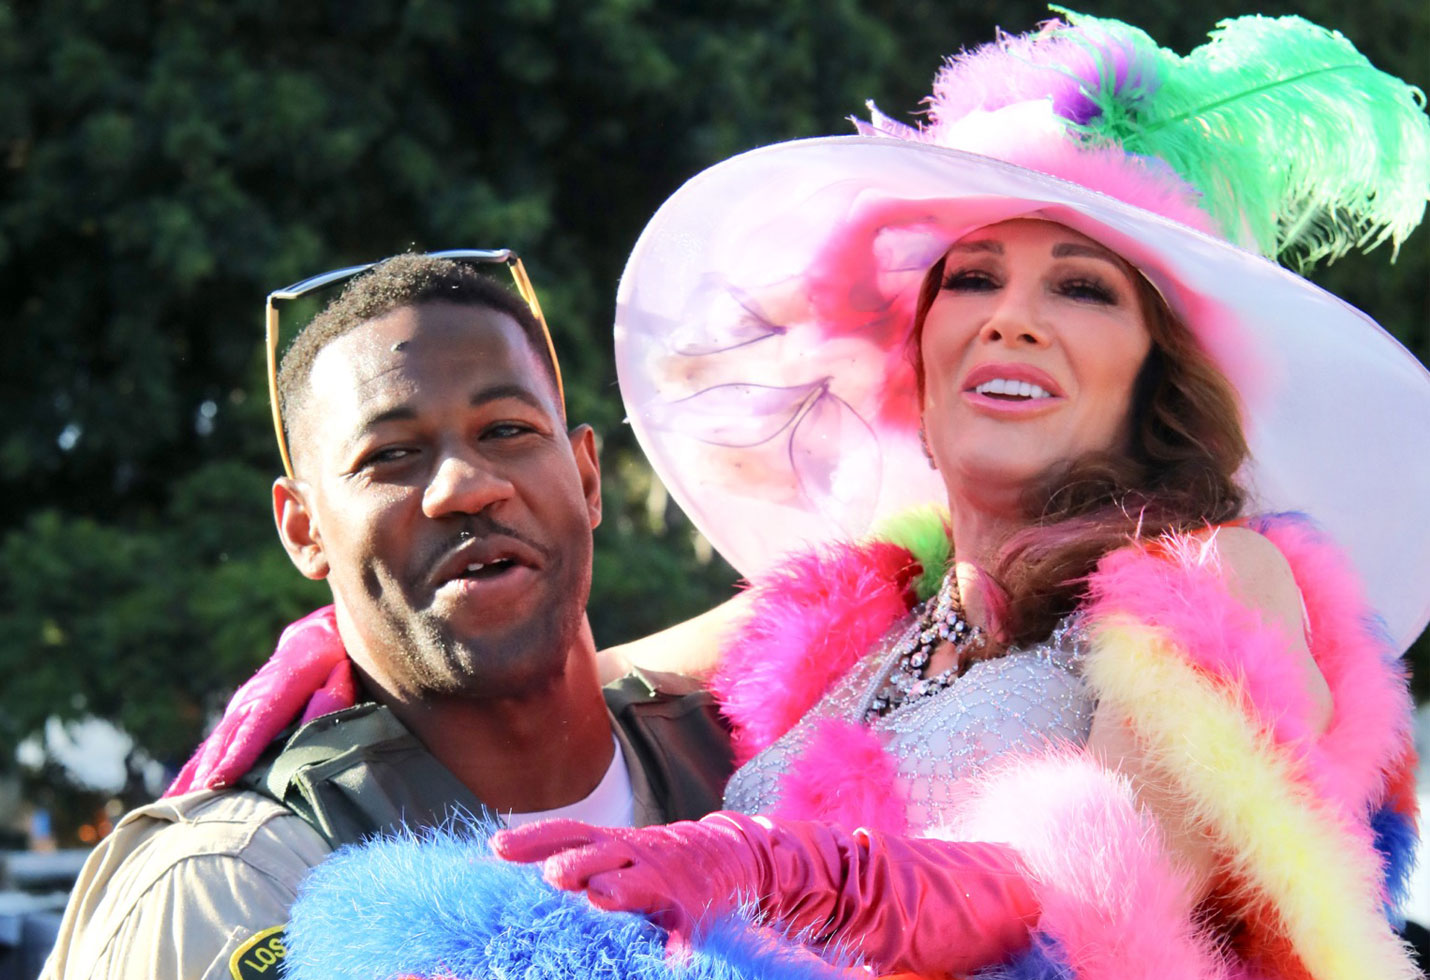 Lisa vanderpump la pride parade vanderpump rules cast photos